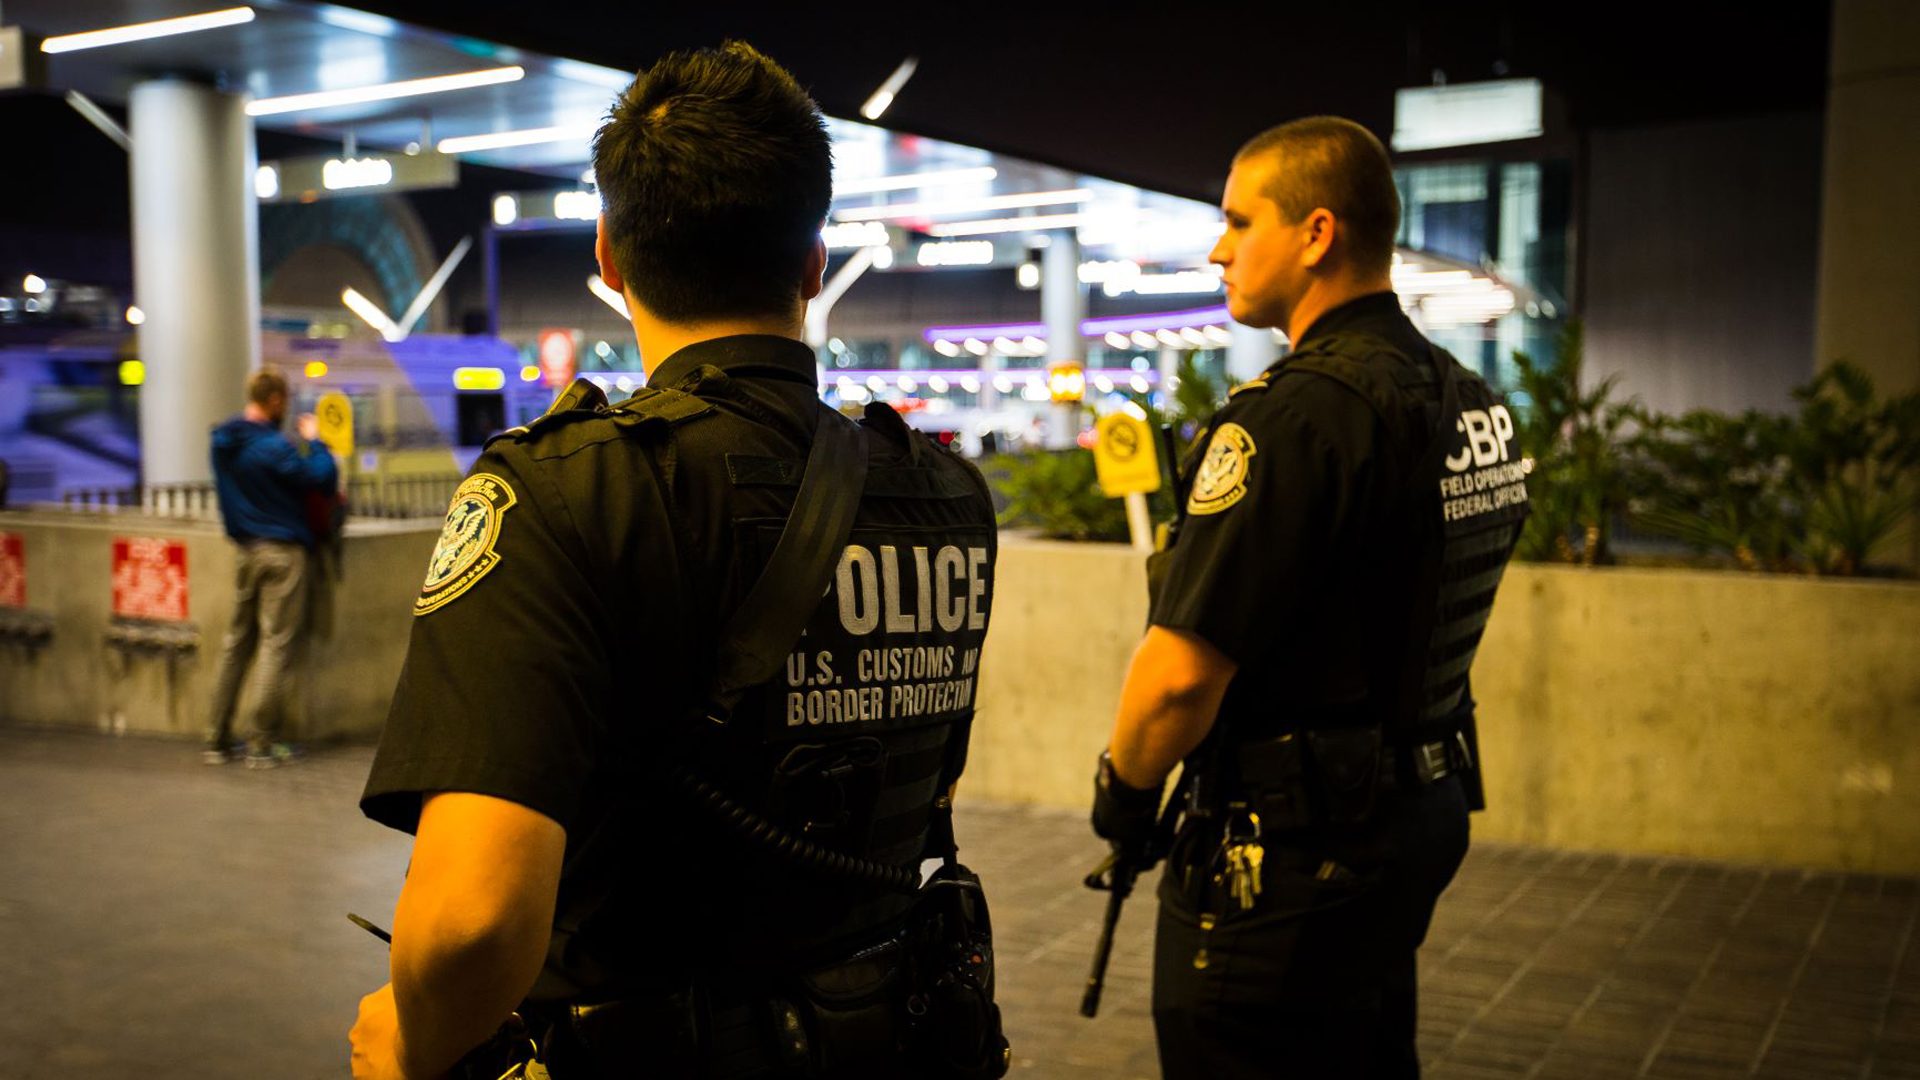 CBP officers at LAX are seen in a file photo from U.S. Customs and Border Protection.